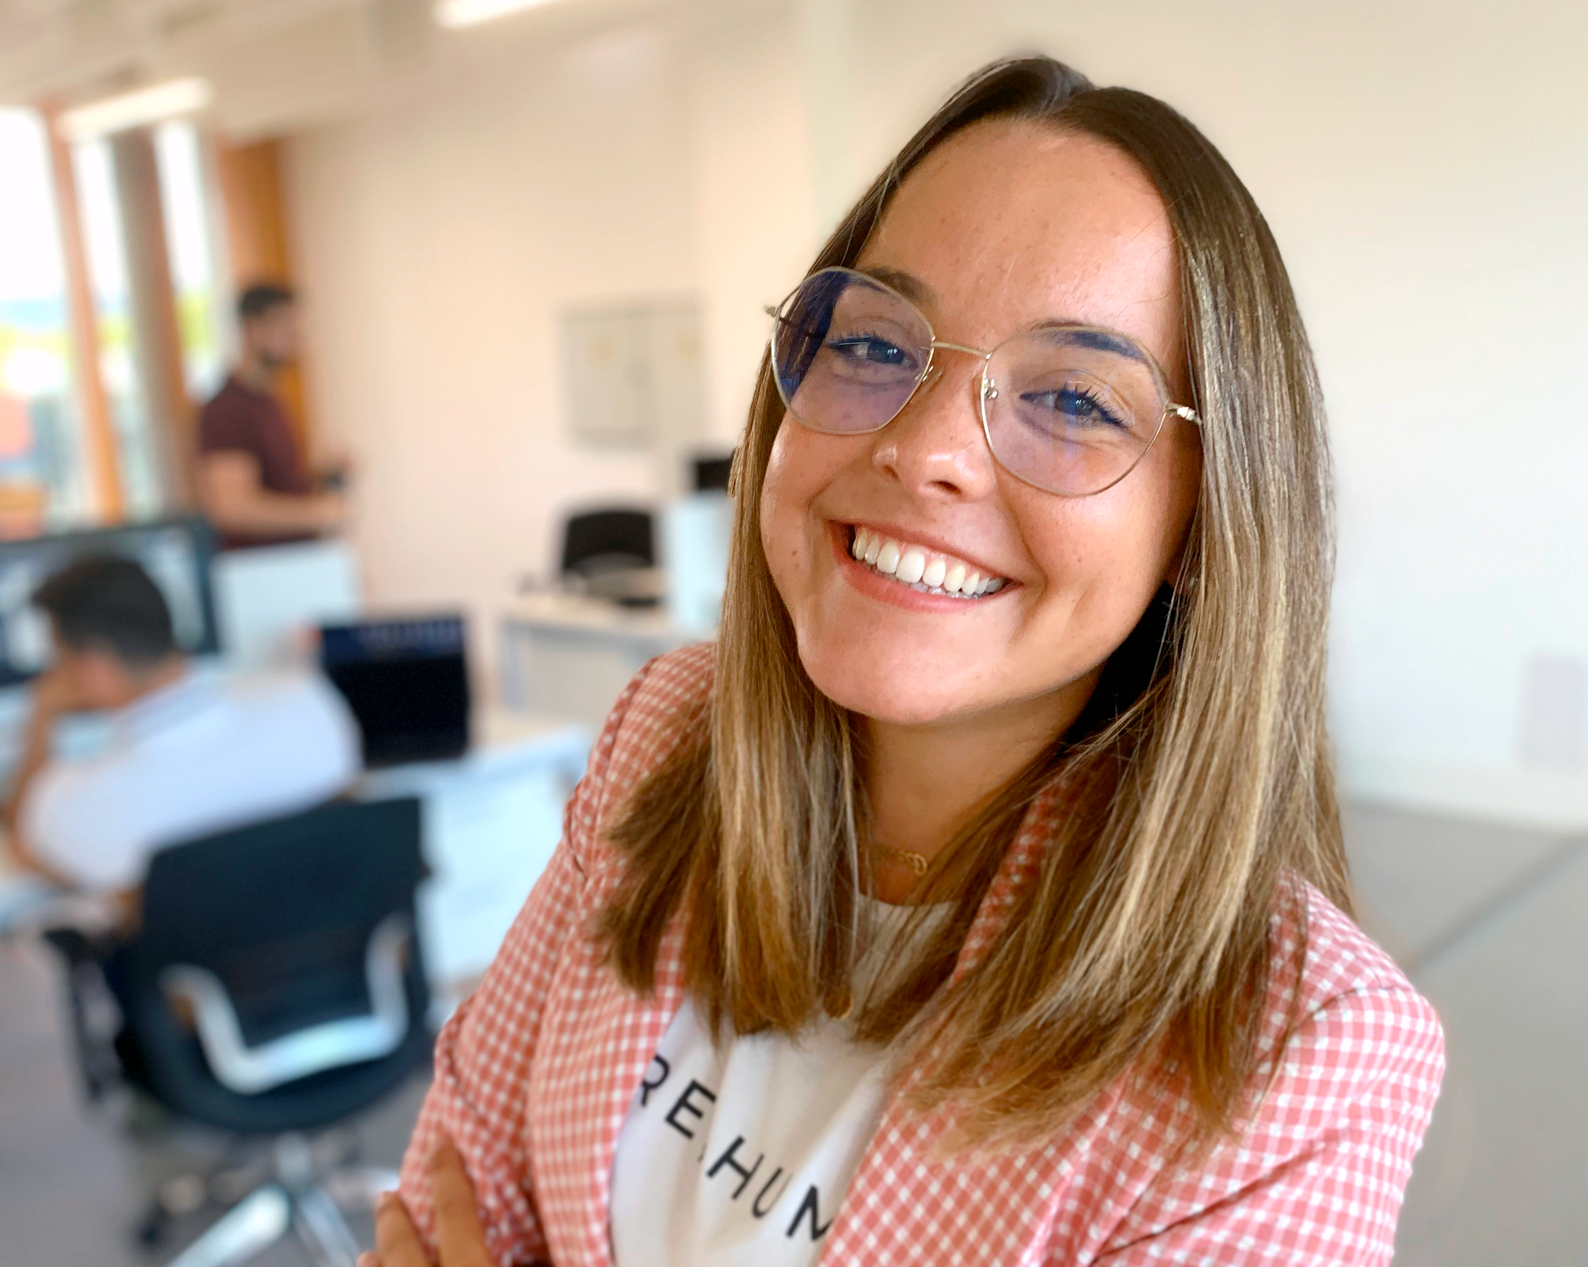 Lara Menéndez named Product Director at Empathy.co